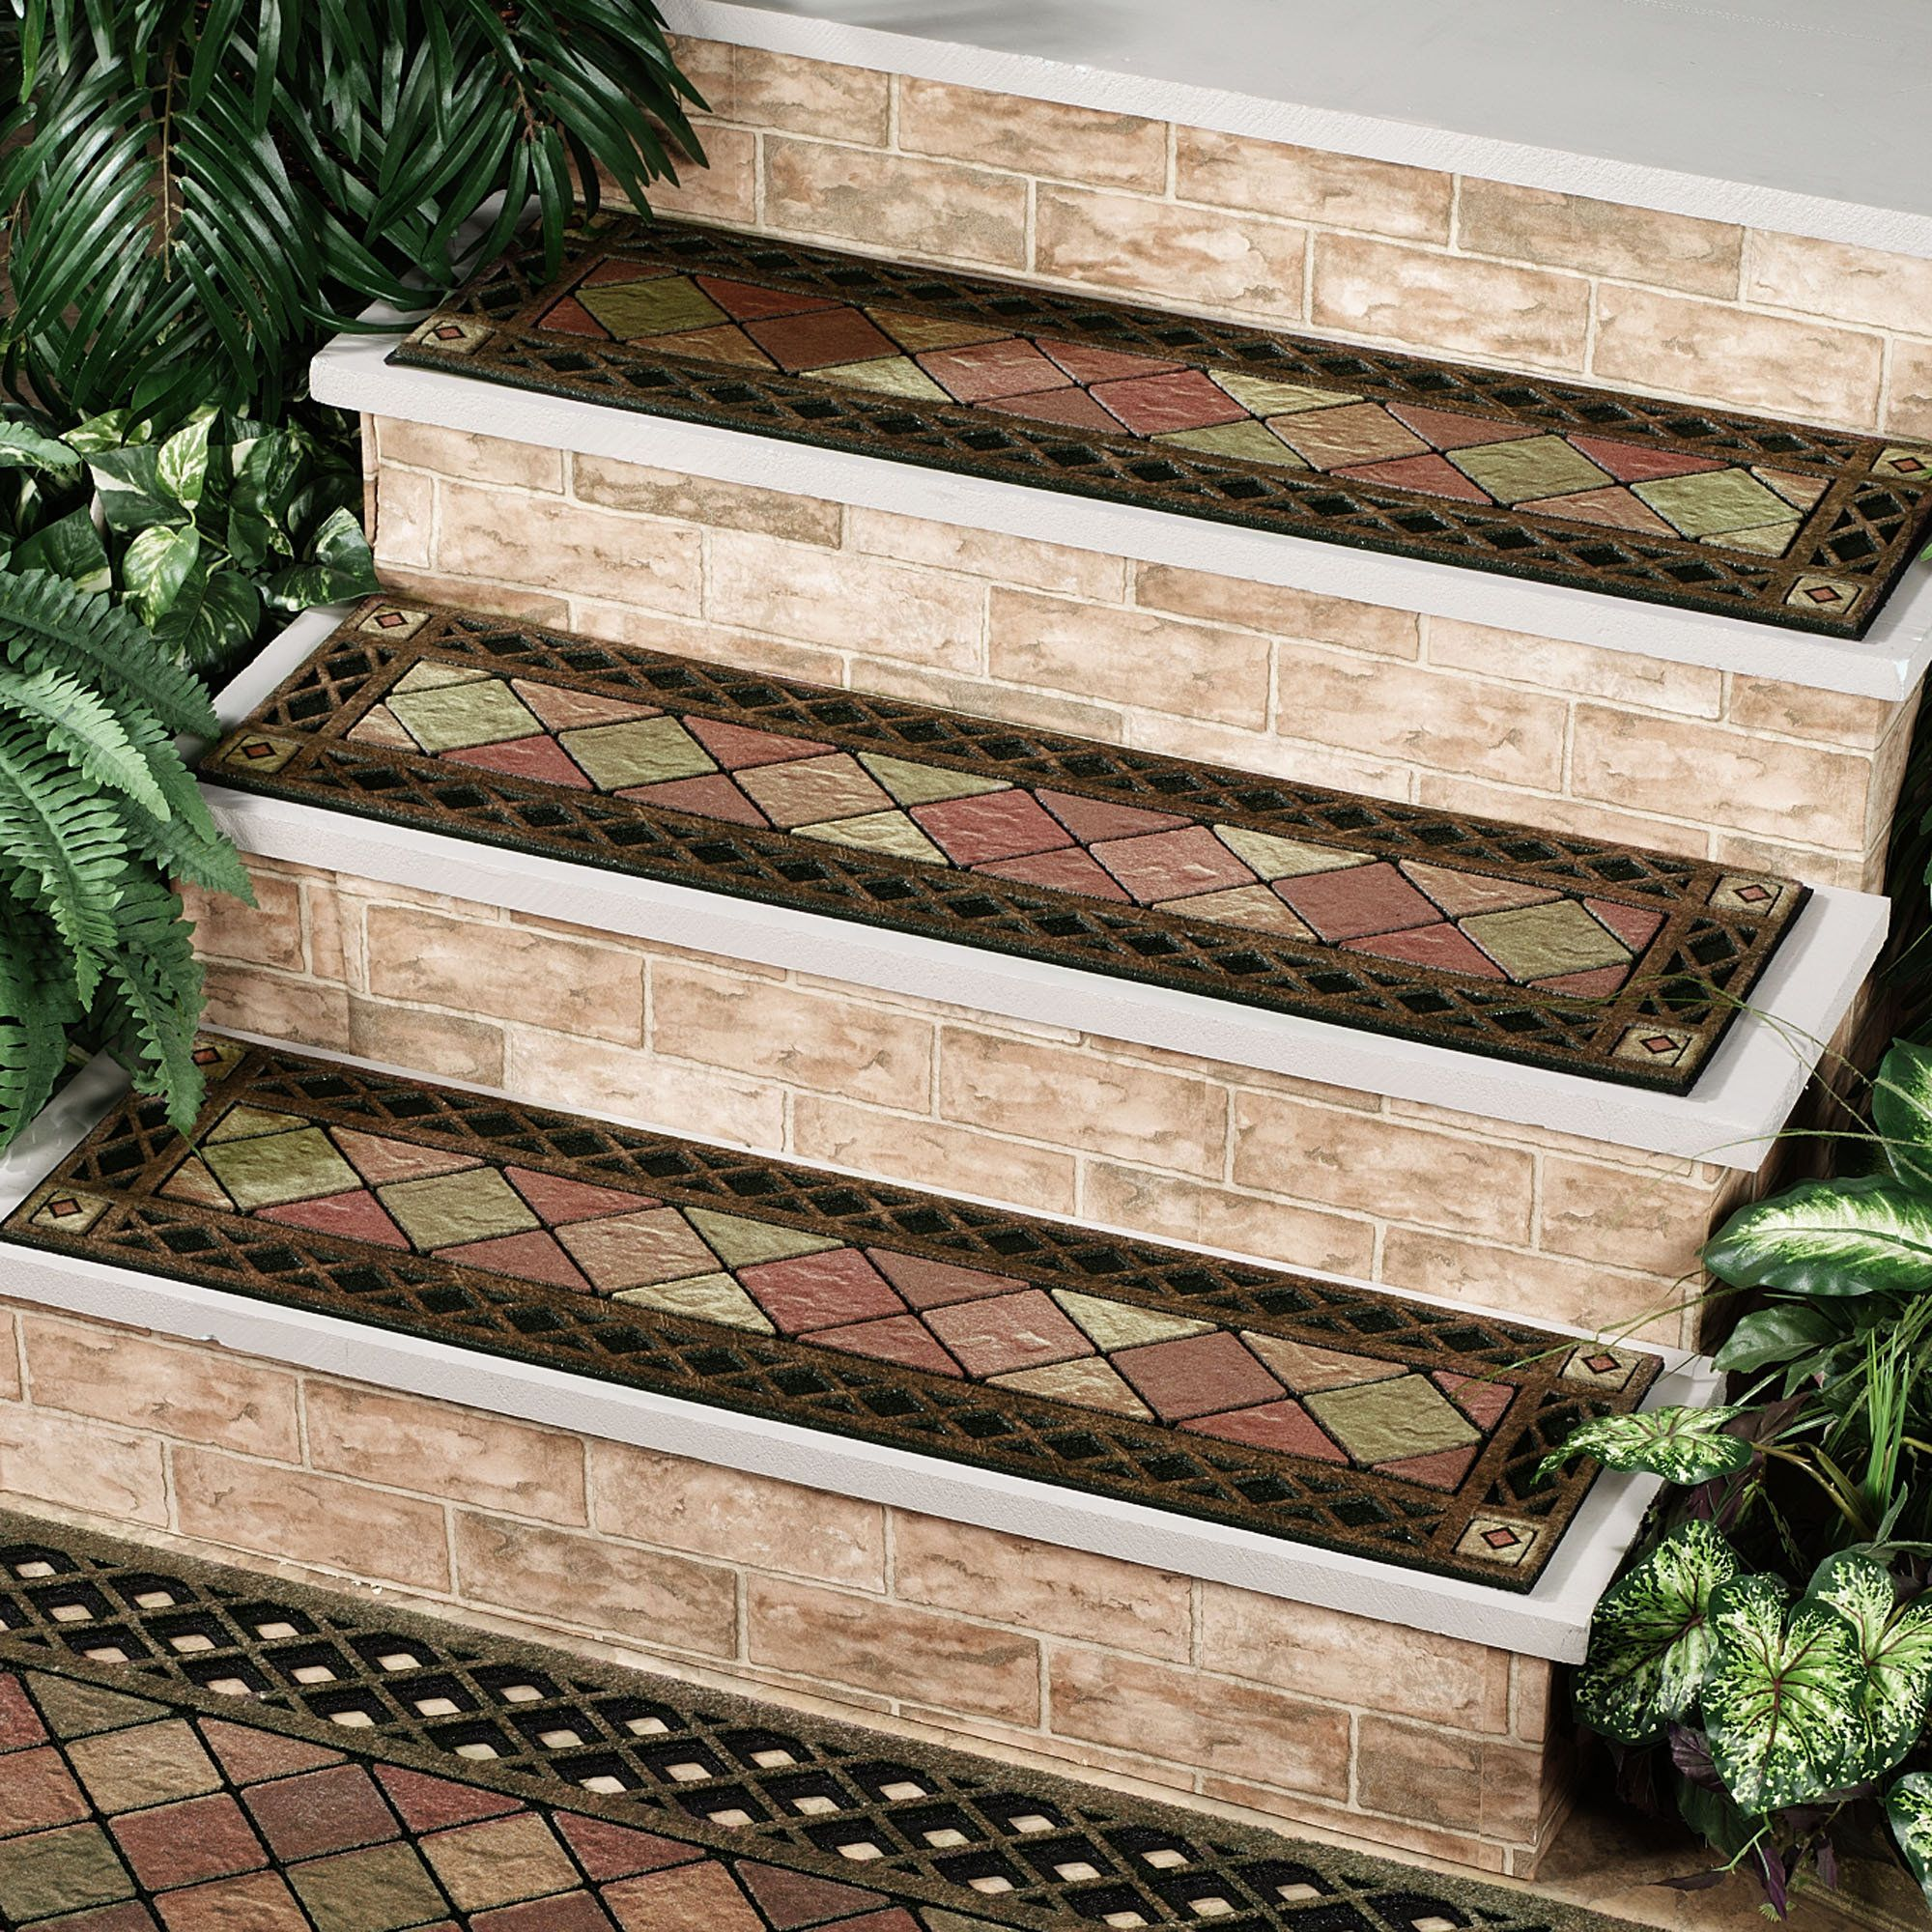 Outdoor Stair Treads Home Depot Stone Ii Stair Tread | Outdoor Steps For Sale